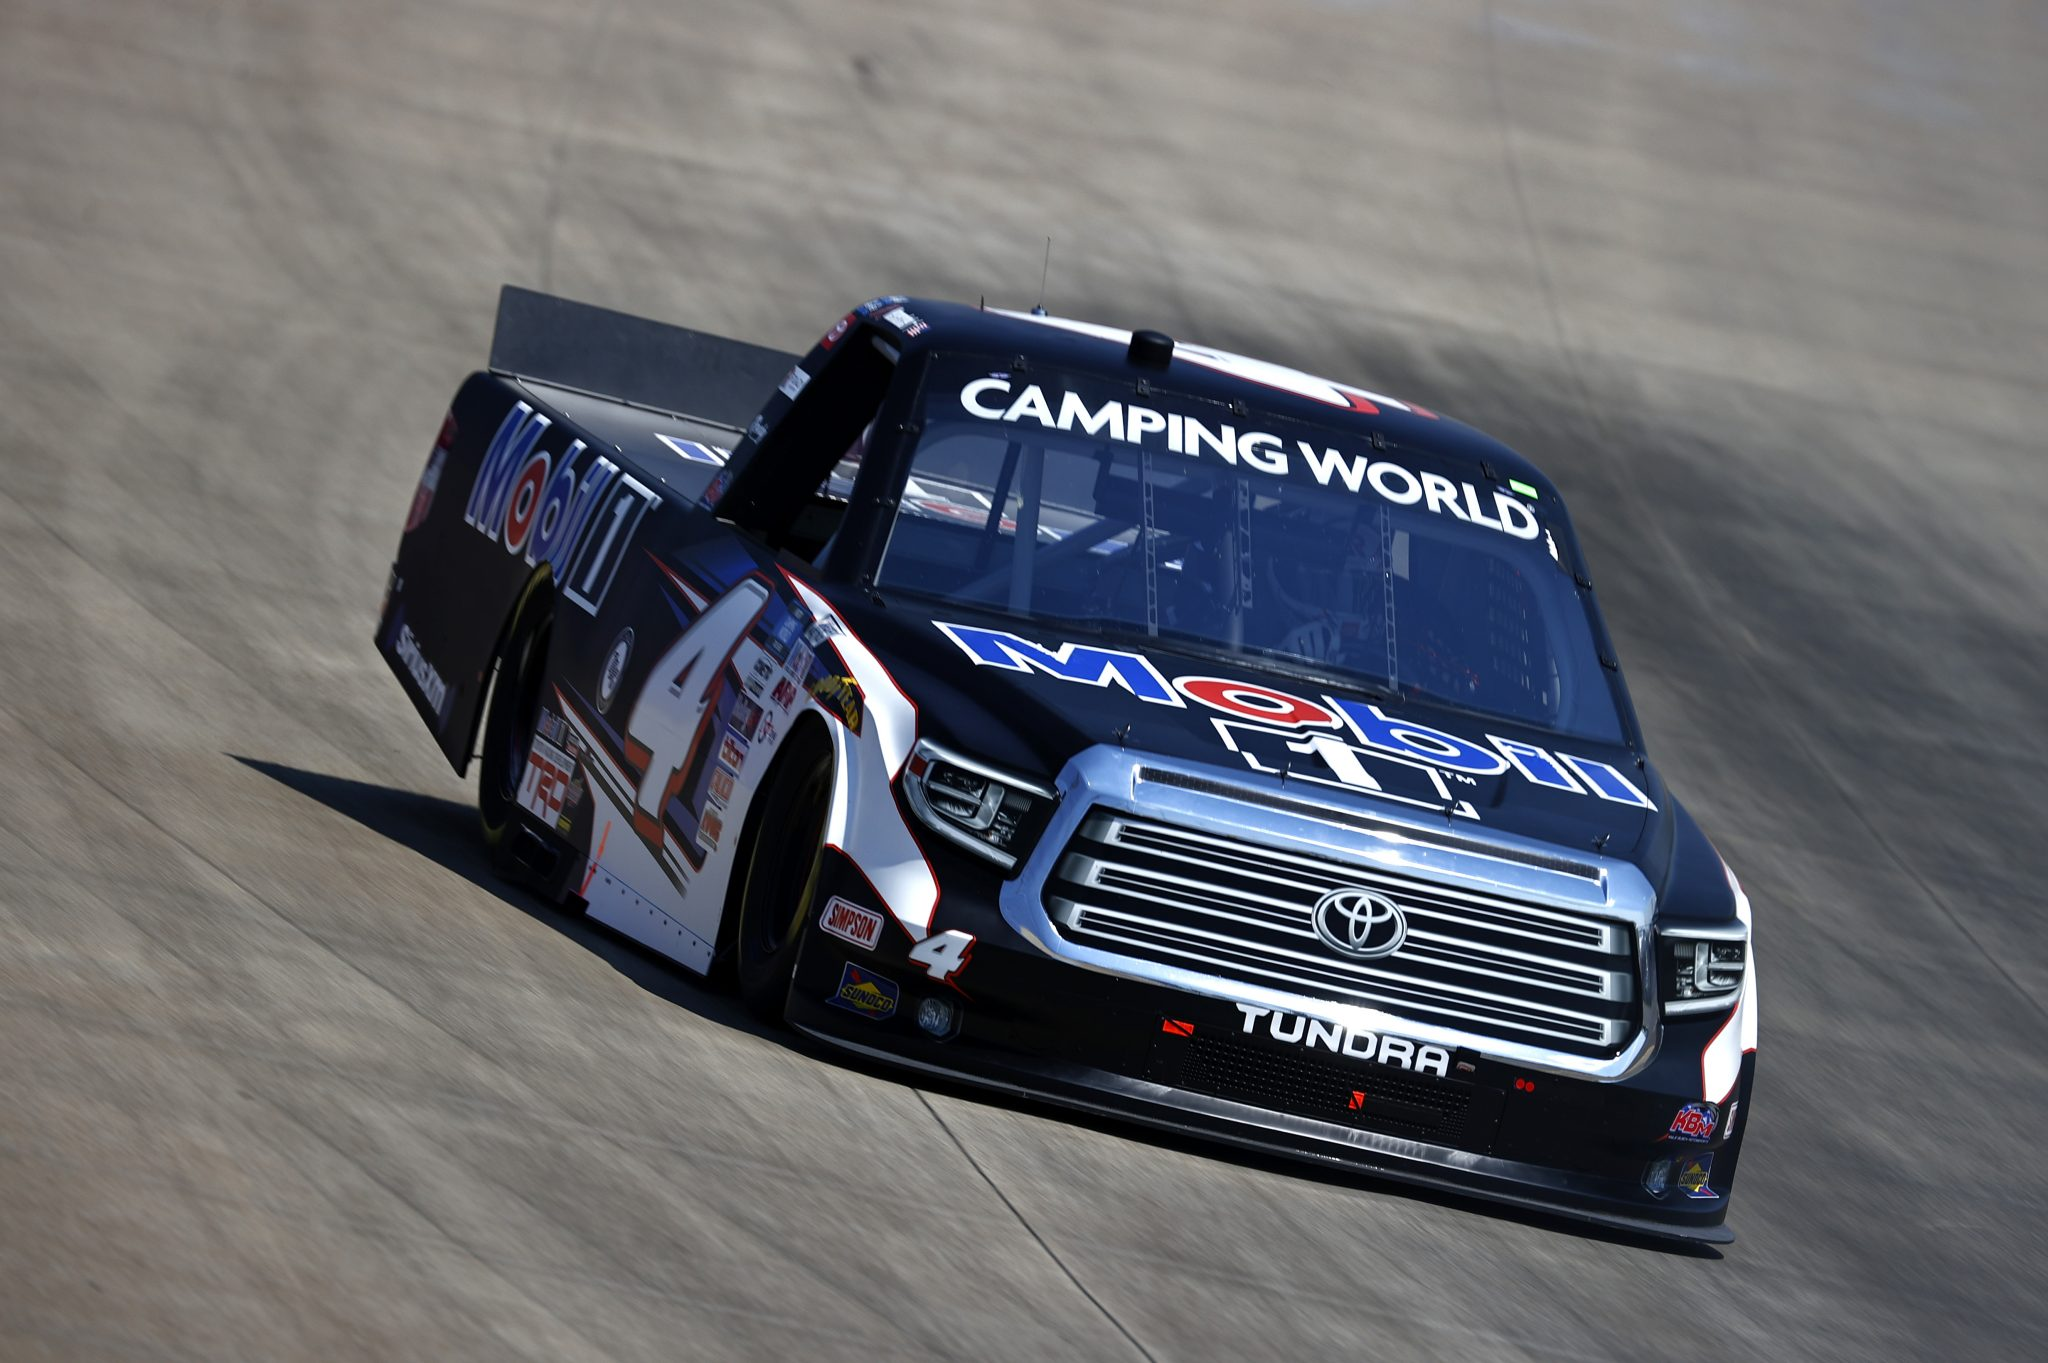 LEBANON, TENNESSEE - JUNE 18: John Hunter Nemechek, driver of the #4 Mobil 1 Toyota, drives during practice for the NASCAR Camping World Truck Series Rackley Roofing 200 at Nashville Superspeedway on June 18, 2021 in Lebanon, Tennessee. (Photo by Jared C. Tilton/Getty Images) | Getty Images